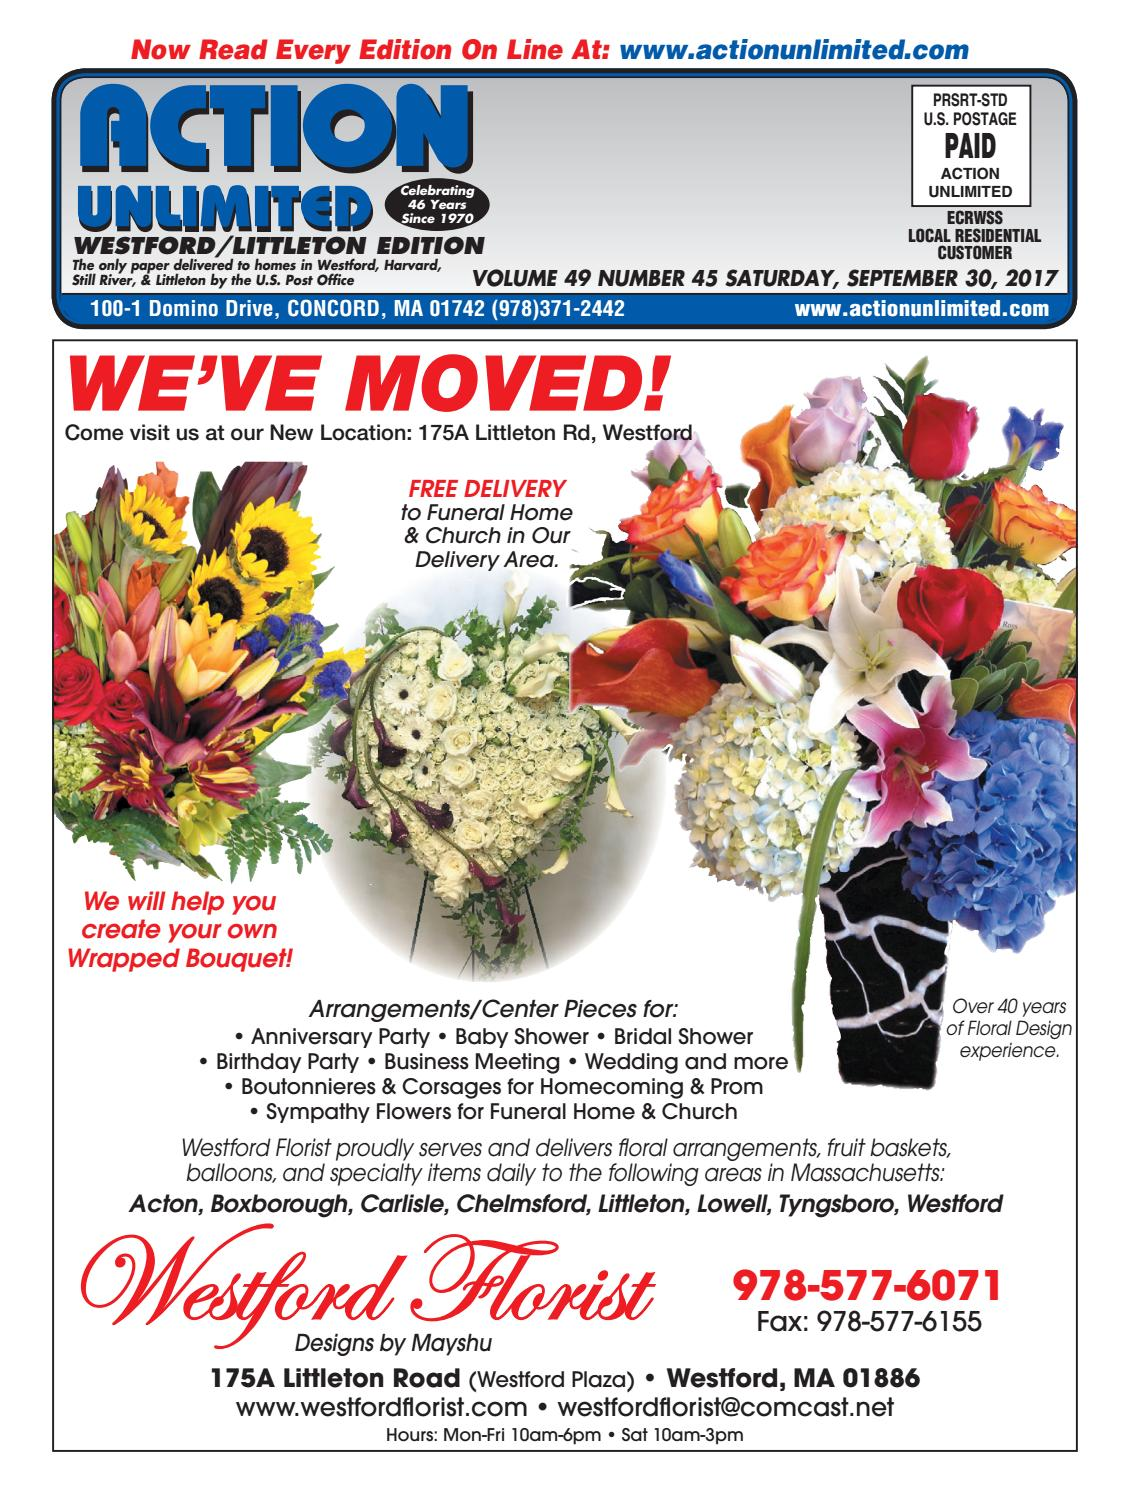 c5526a2d3063 093017 westford by Action Unlimited - issuu